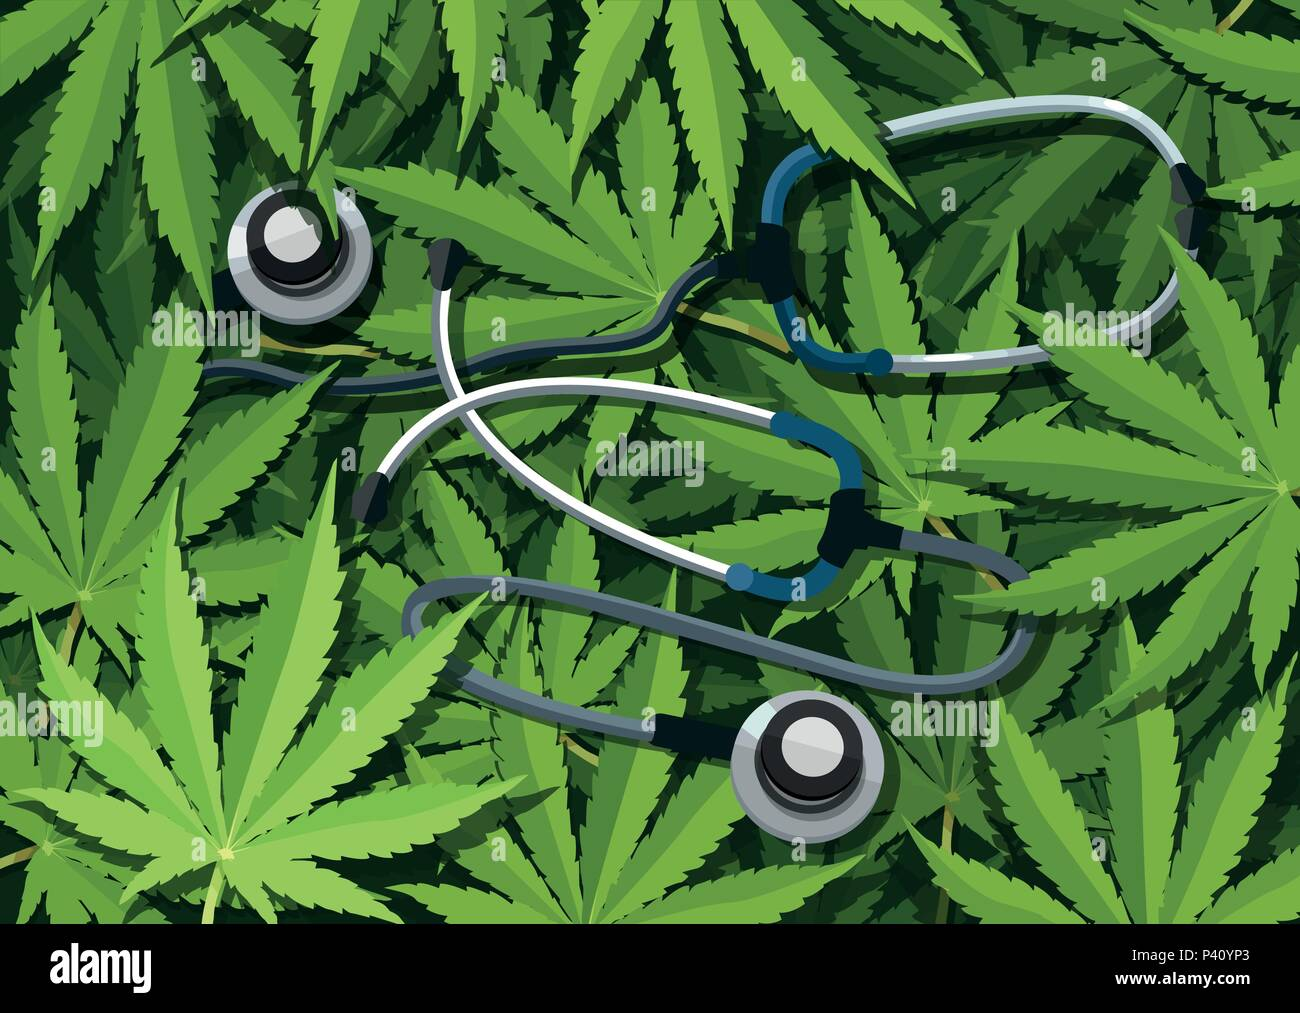 Marijuana medical use and health care concept. Traditional medicine versus other options with cannabis - Stock Image